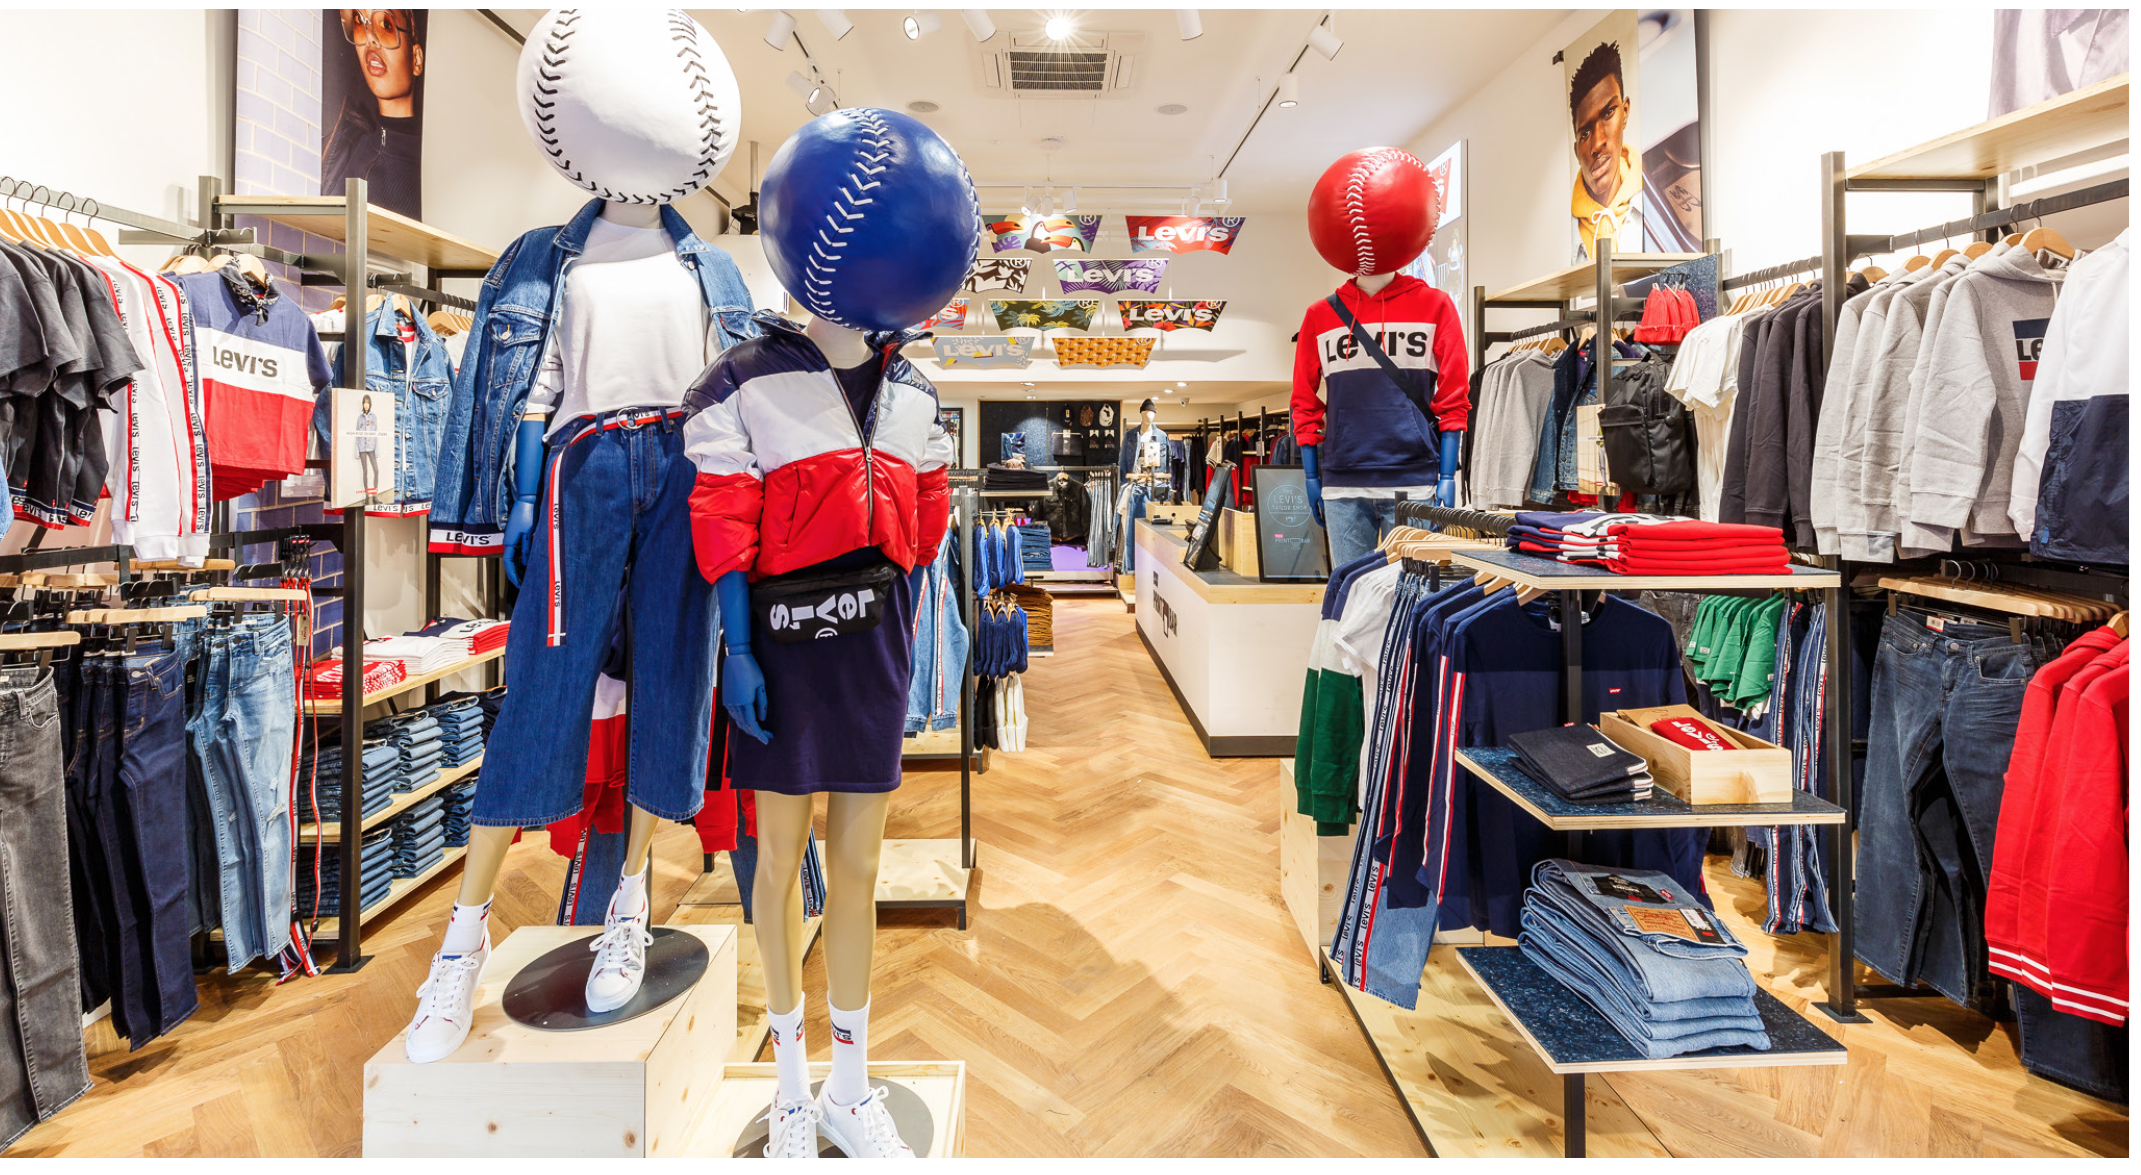 Baseball Mannequin heads for Levi's in Rotterdam